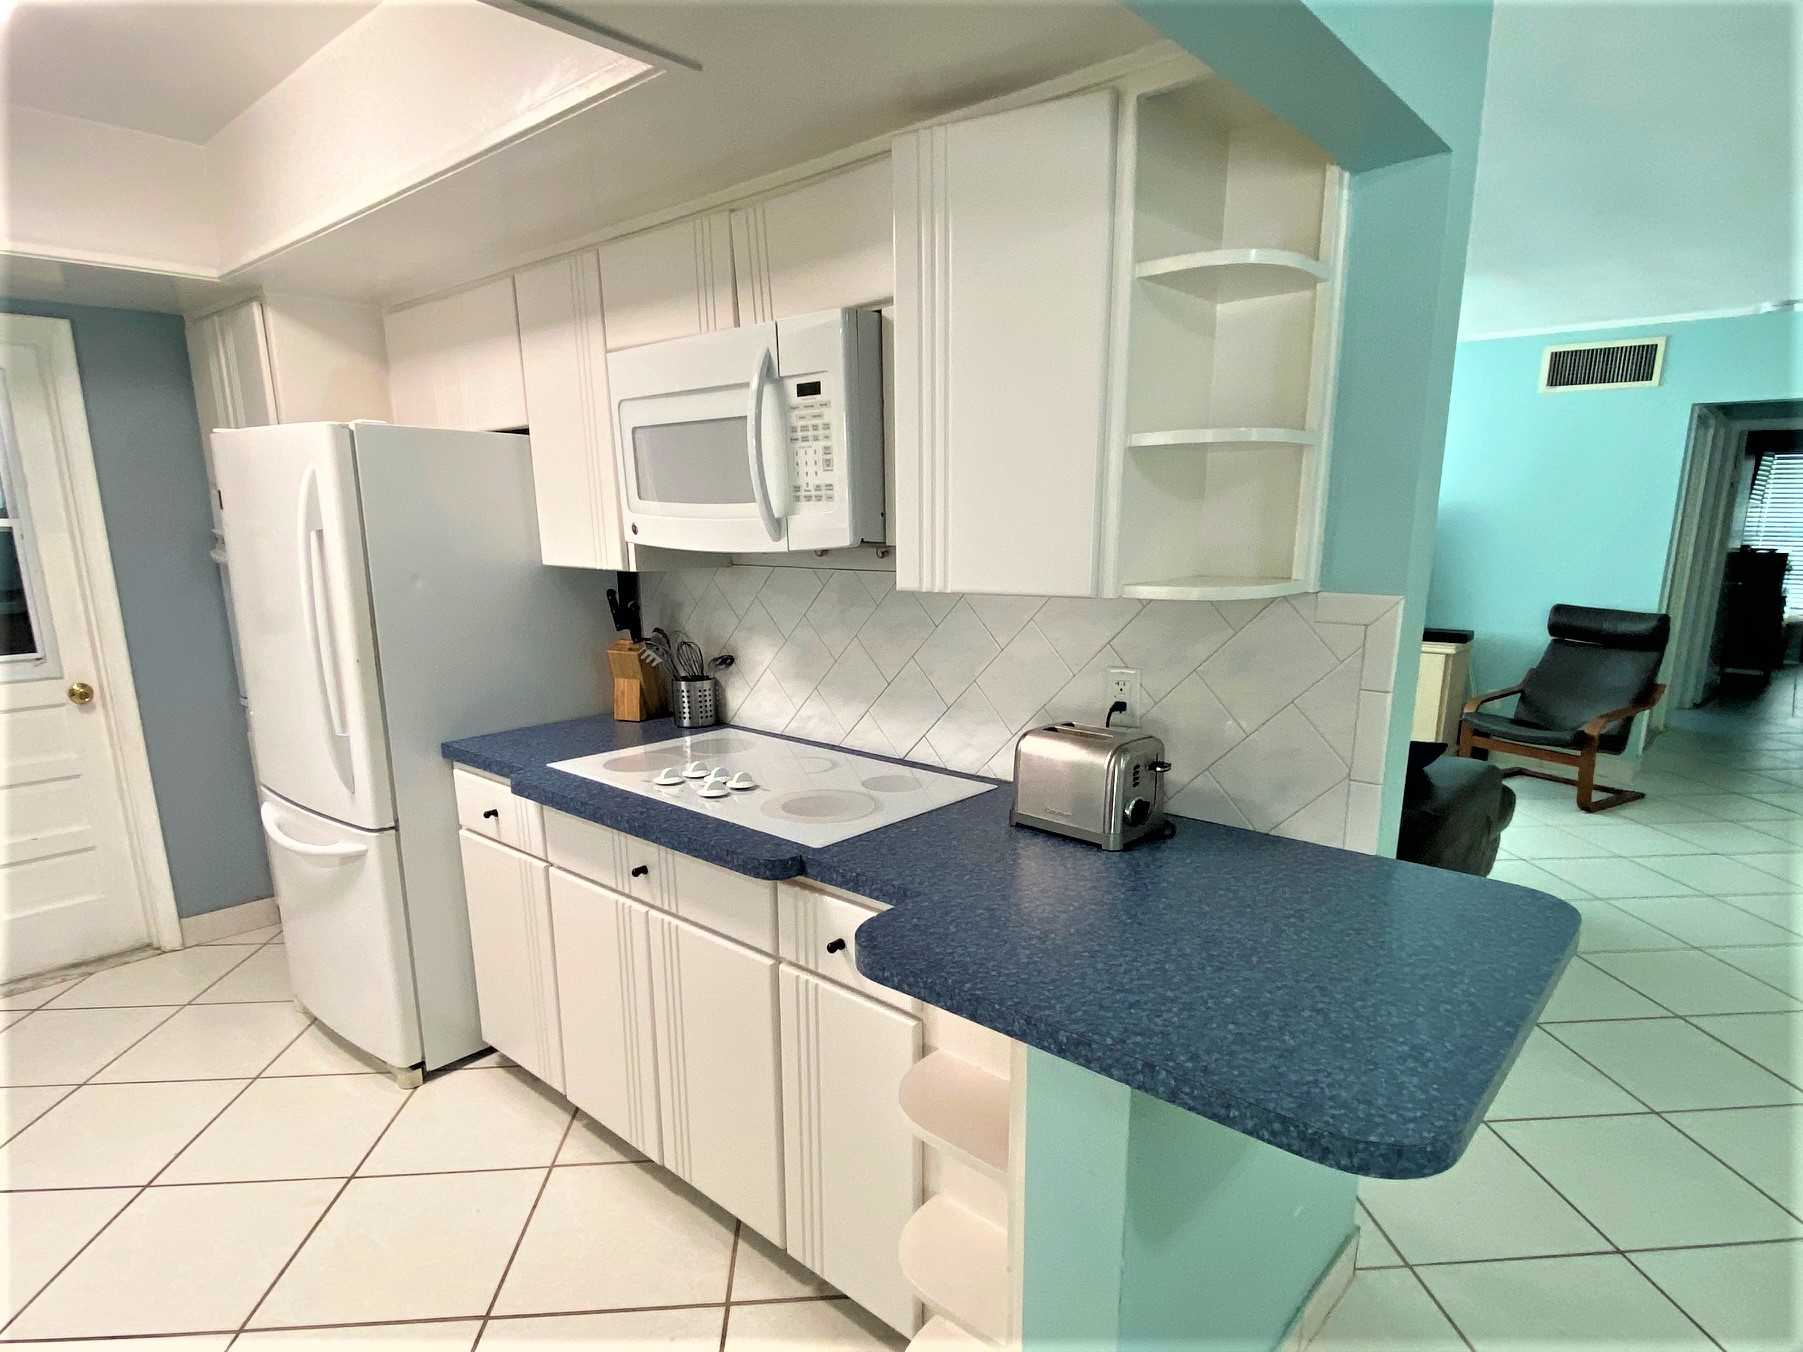 Kitchen has cooktop, microwave and conventional oven.